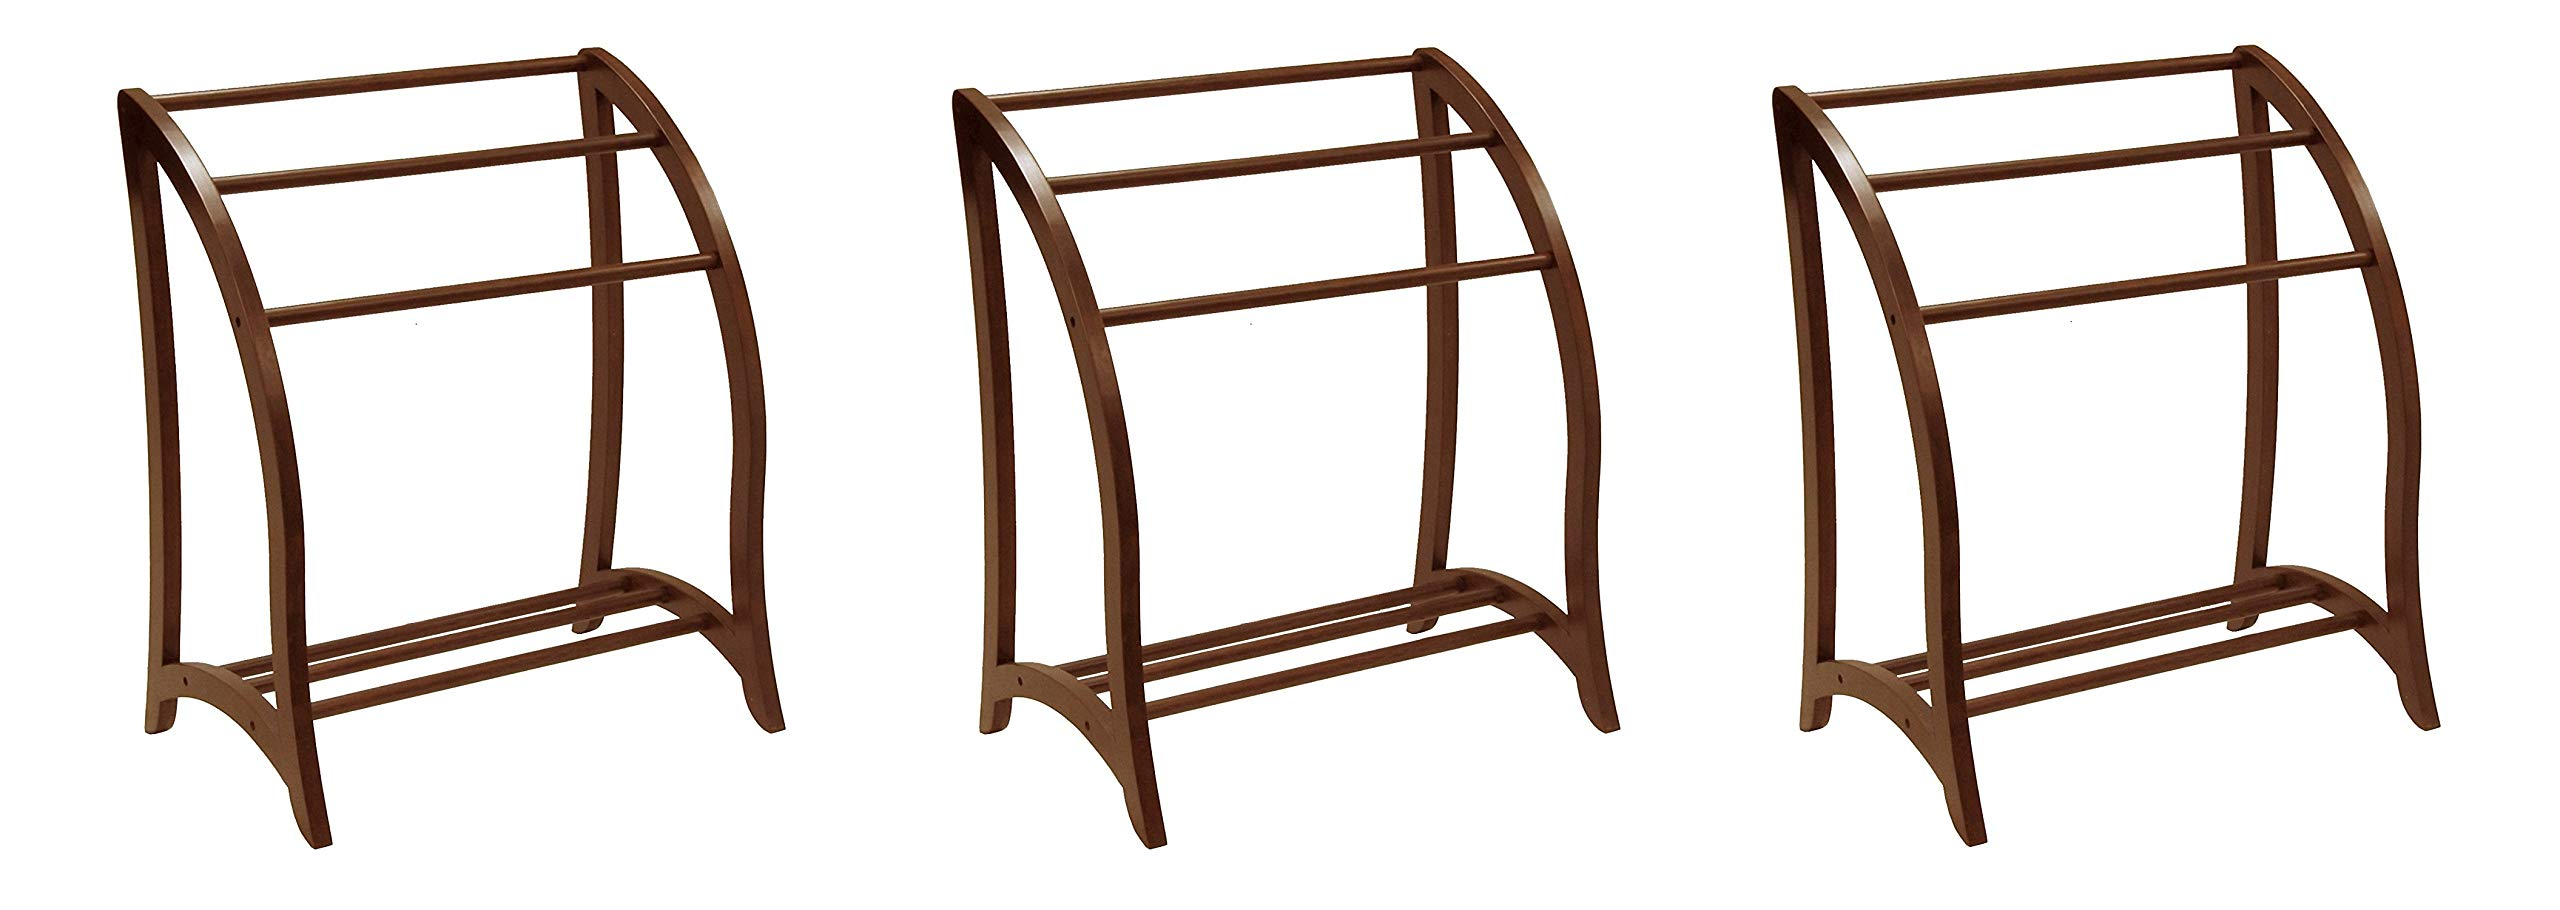 Winsome Wood Blanket Rack, Antique Walnut (Pack of 3)